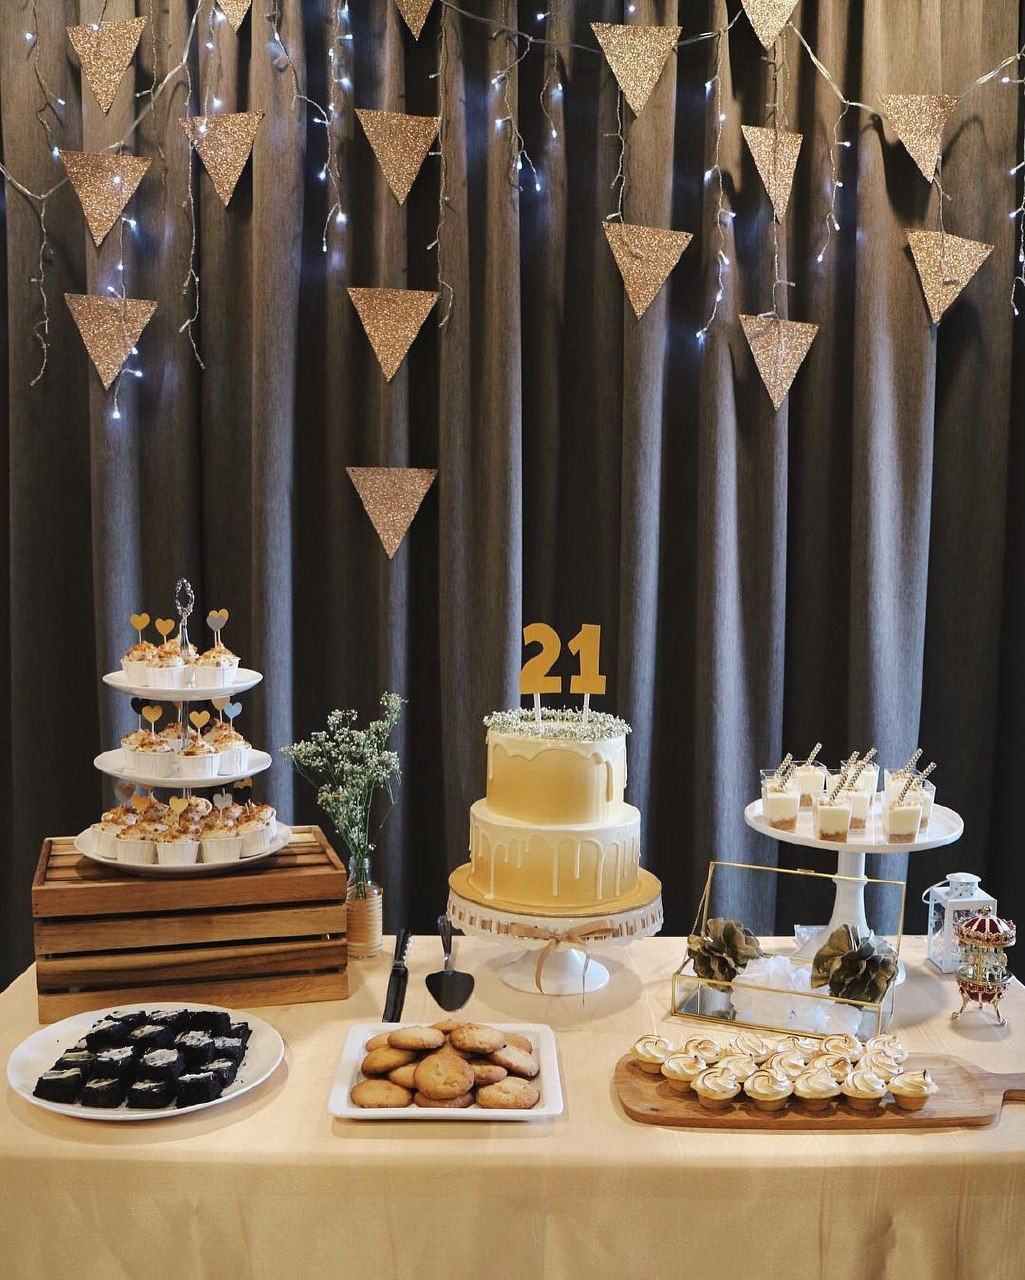 birthday set up dessert table